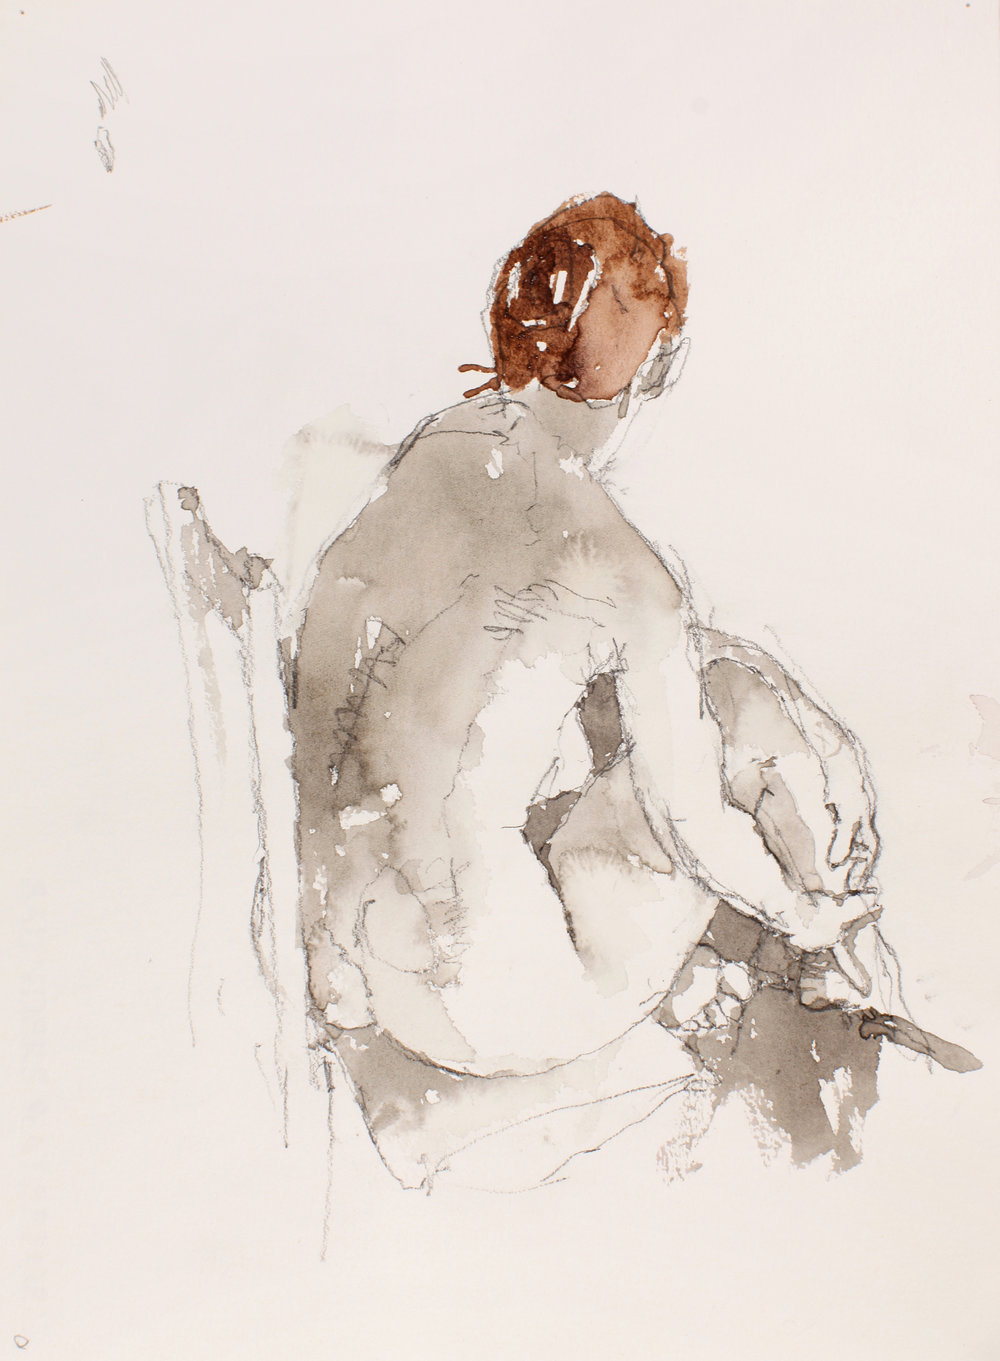 2006_Seated_Nude_From_Back_Holding_Ankle_watercolour_and_pencil_on_paper_15x11in_WPF465.jpg